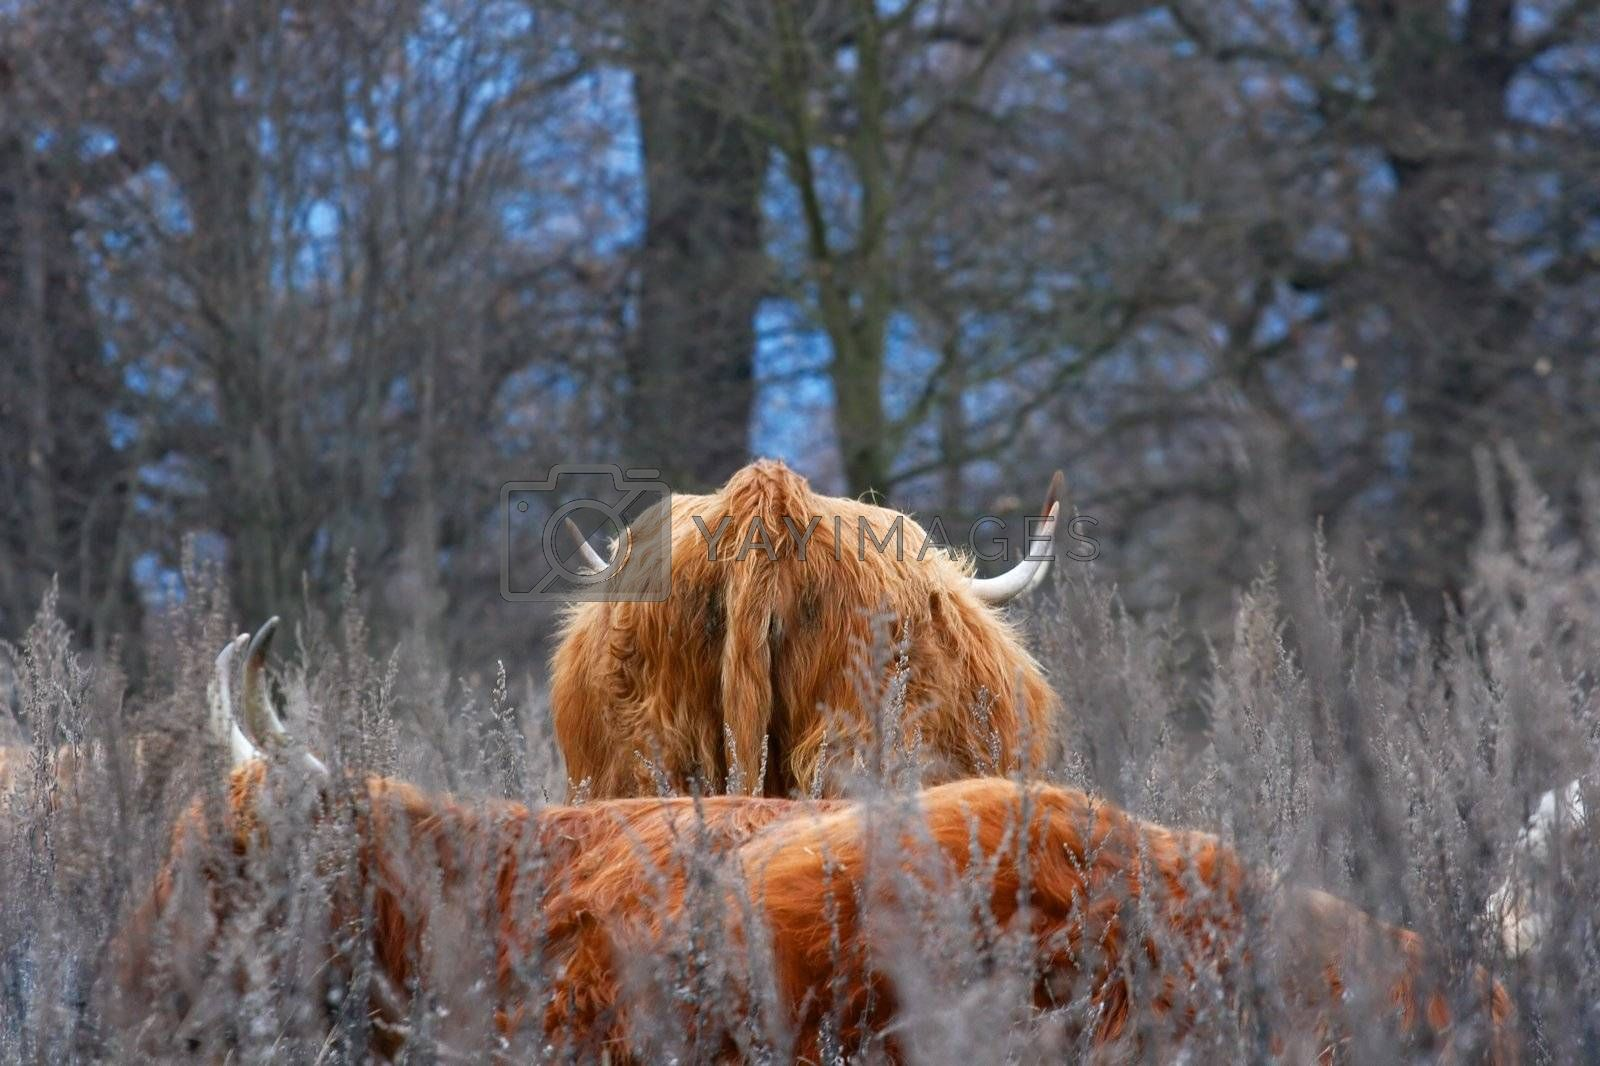 Big hairy animals in a winter forest